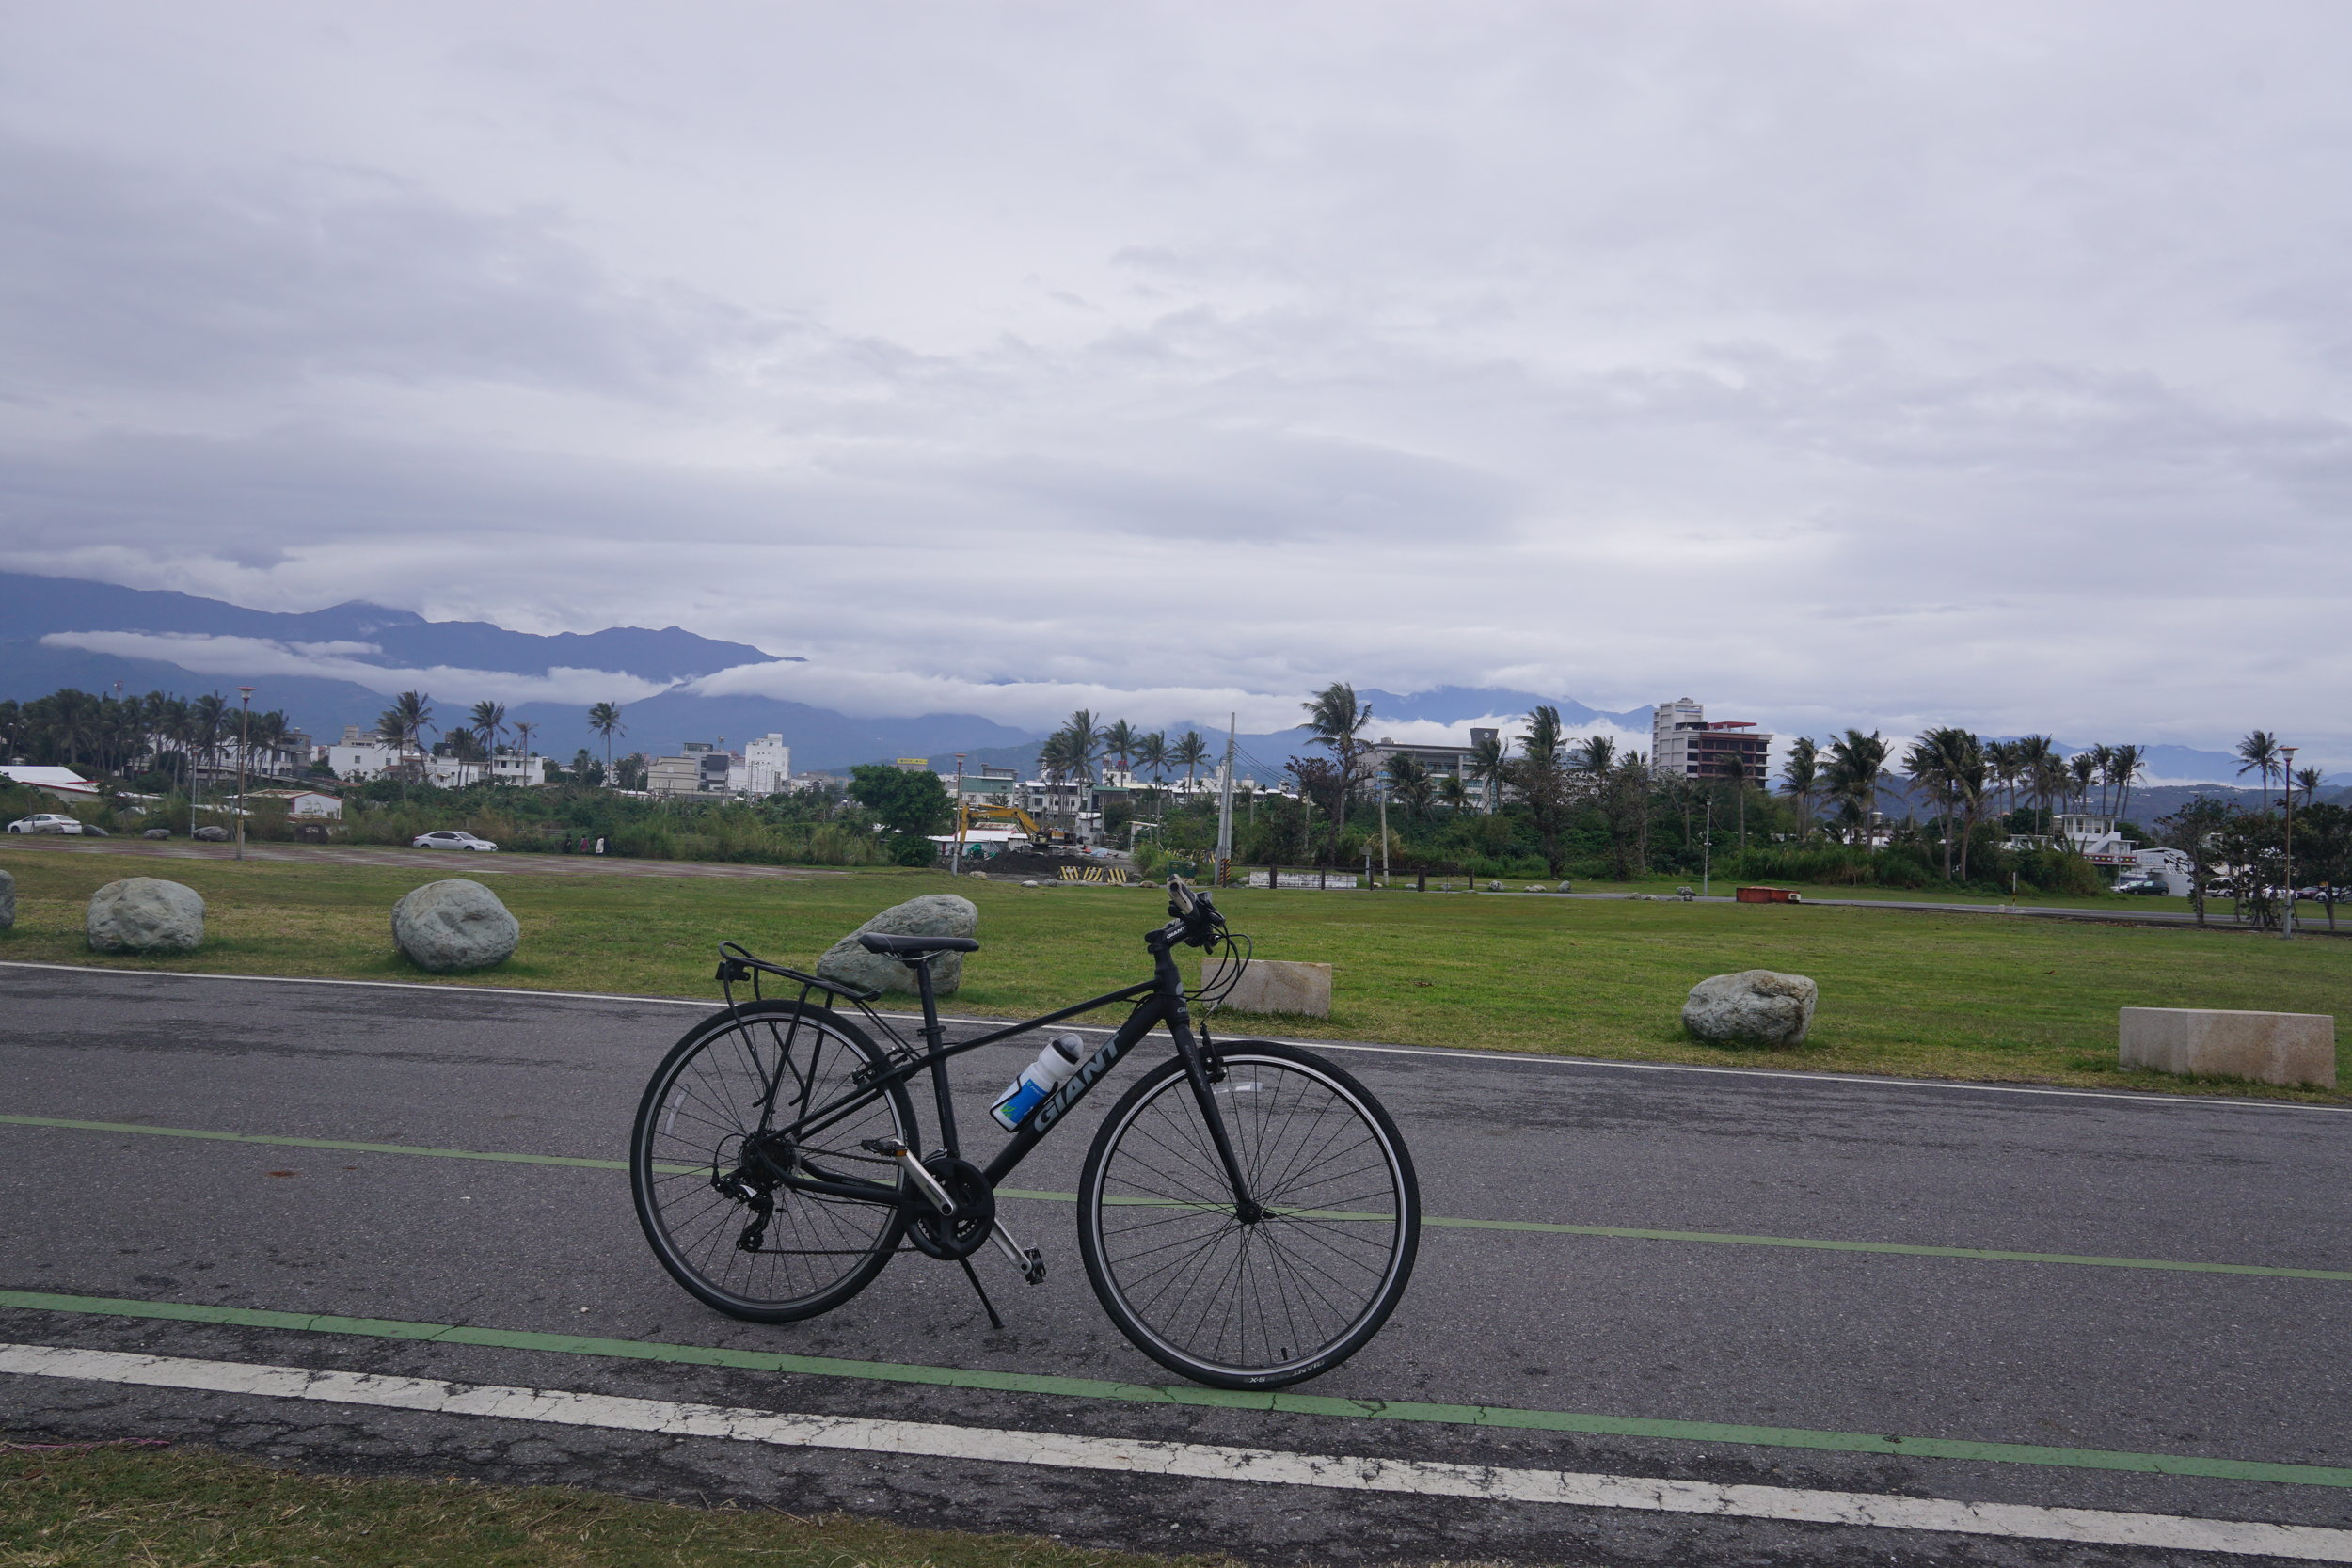 Cycling-In-Taiwan-East-Coast-Road.JPG